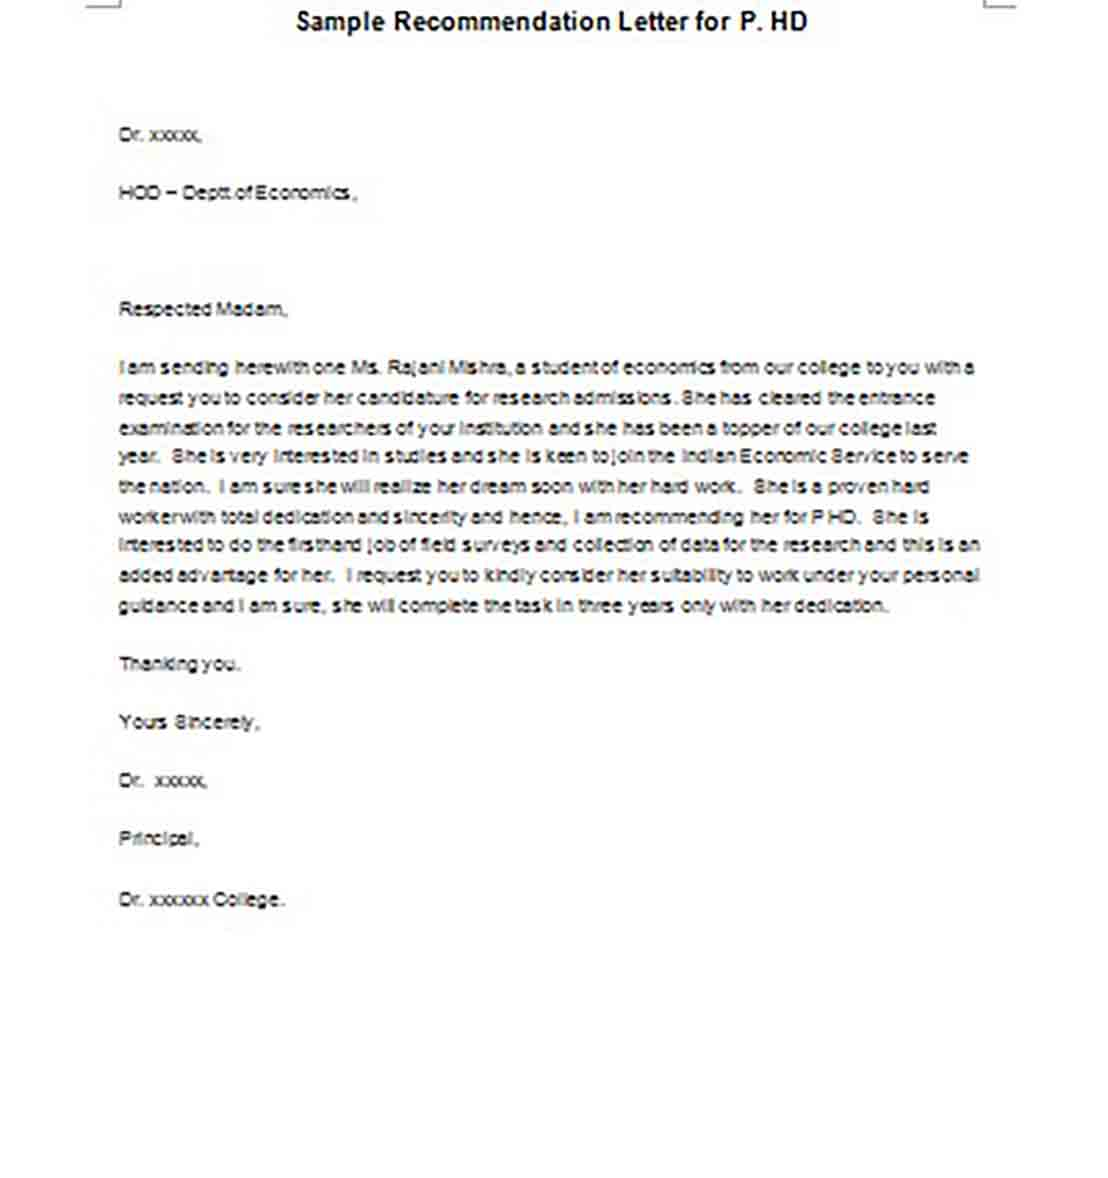 Sample Recommendation Letter for P.HD